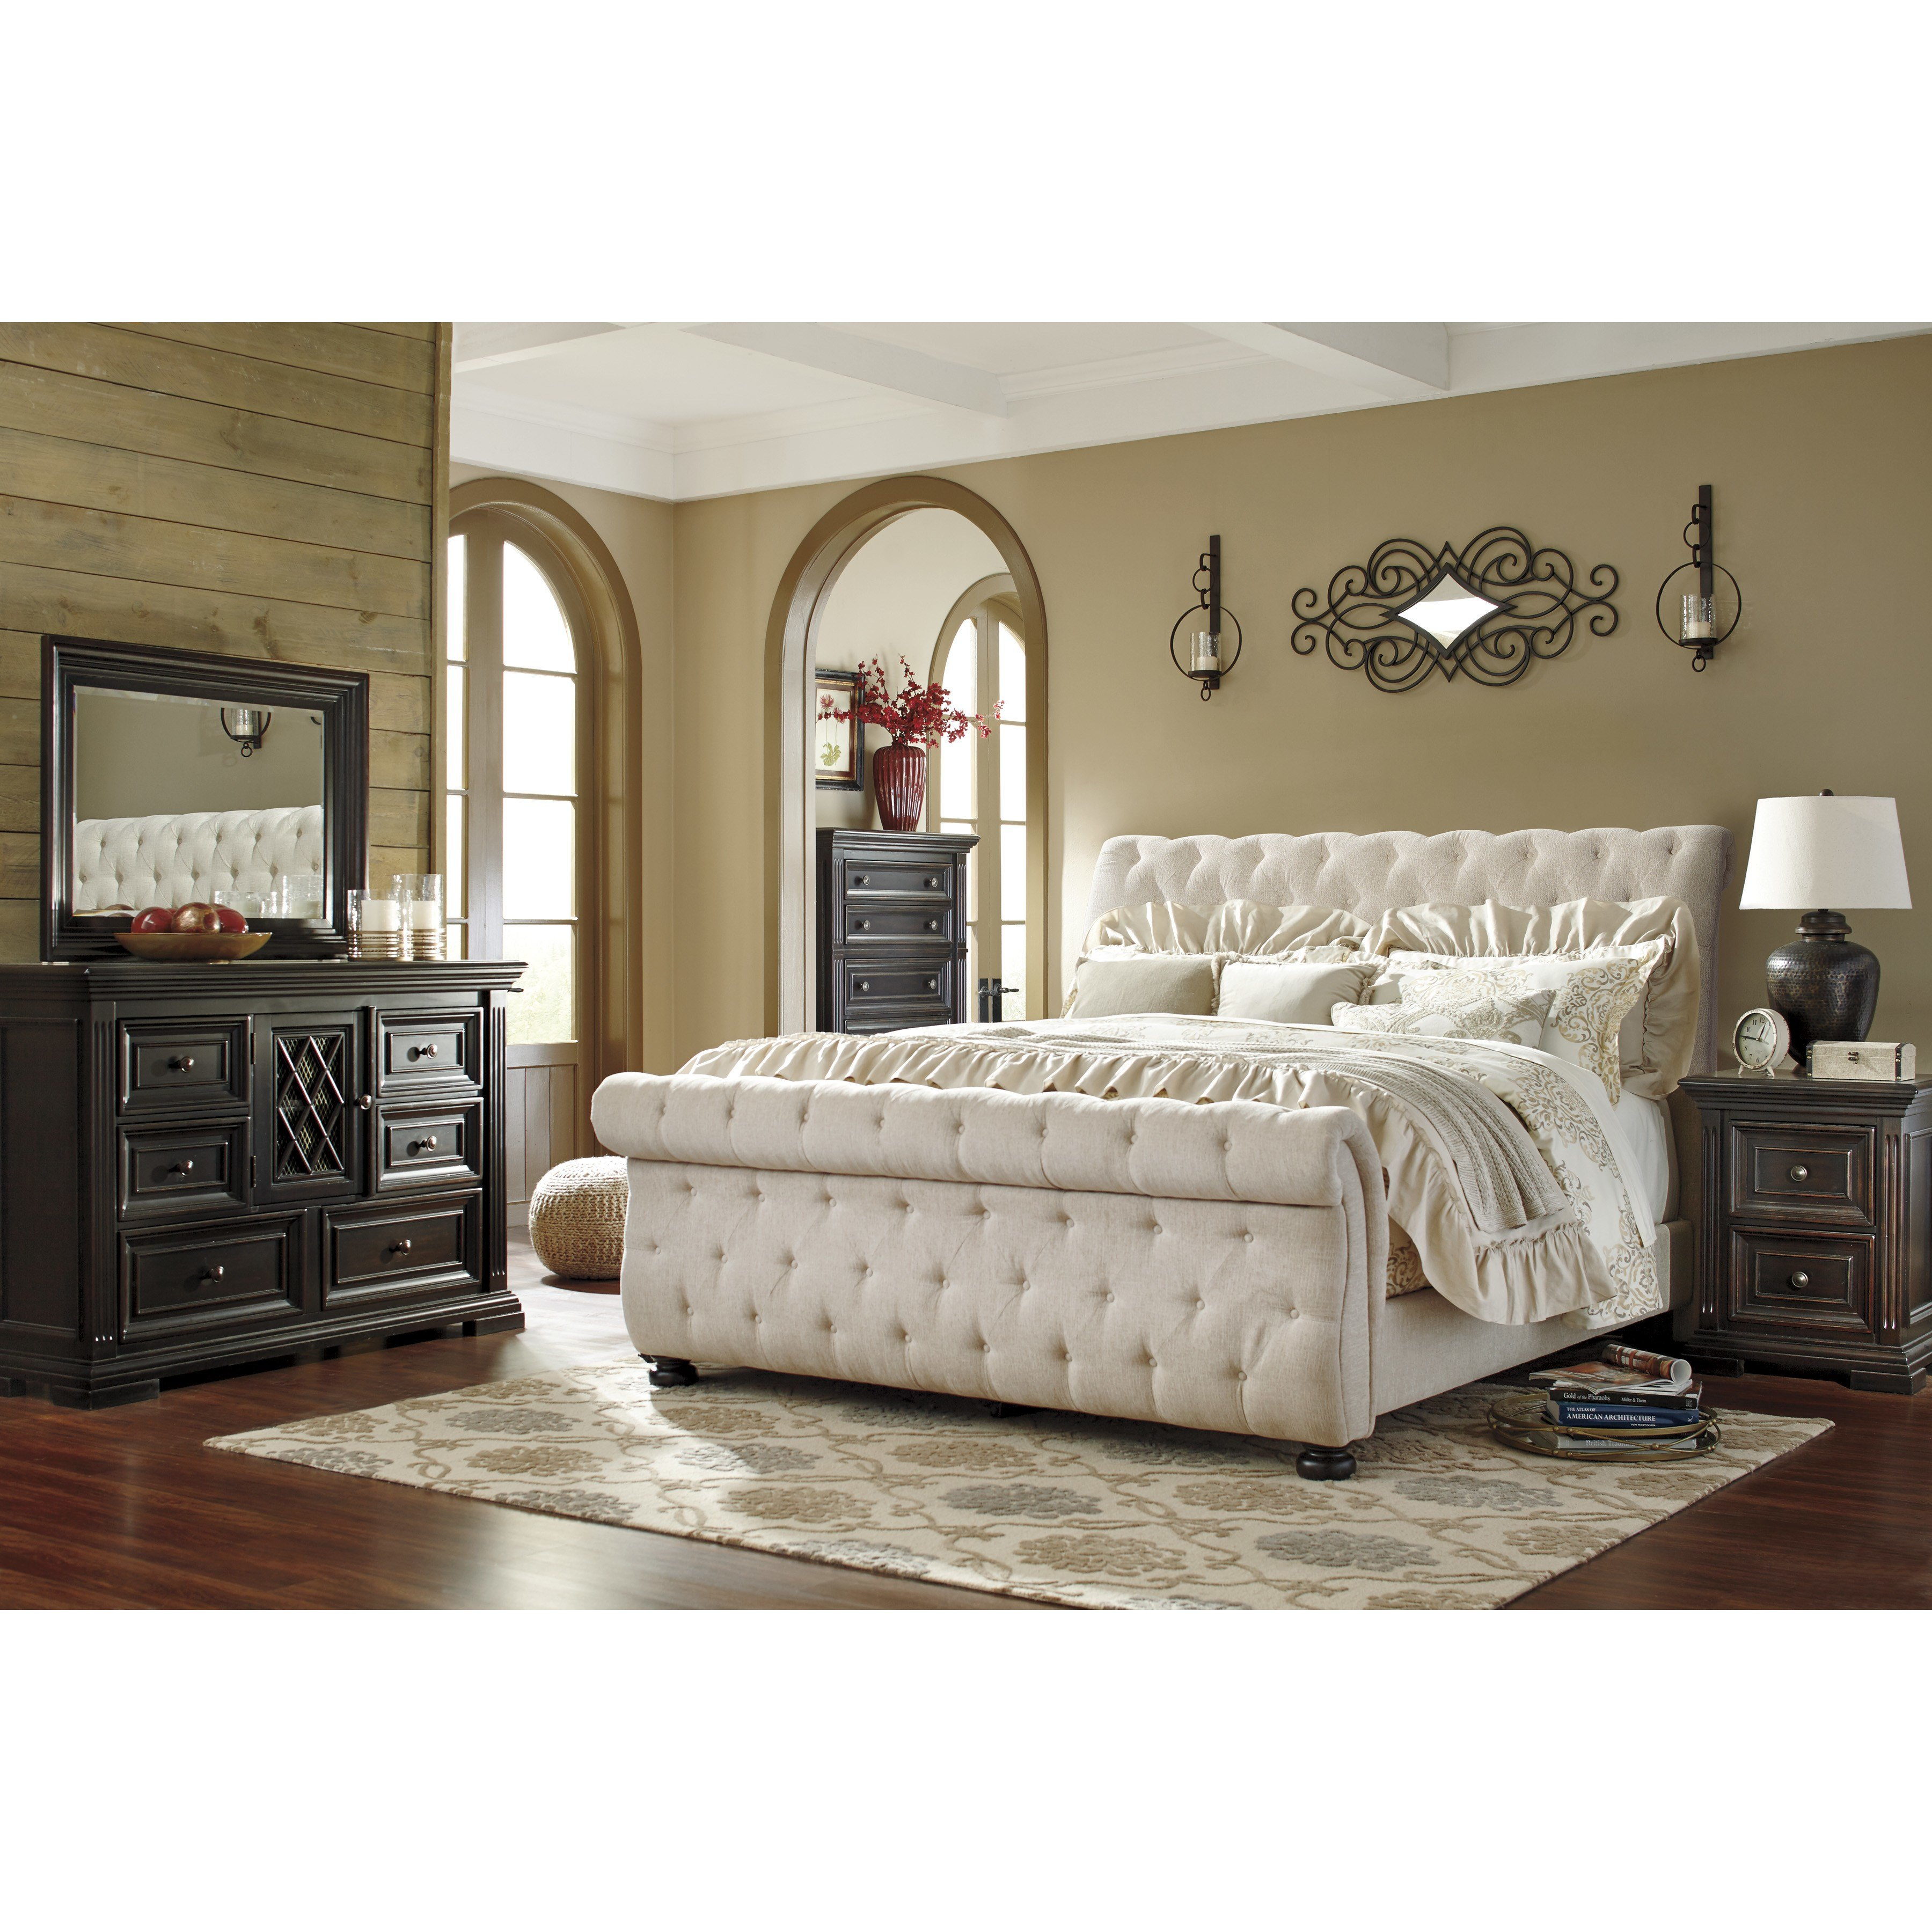 Best Darby Home Co Althea Upholstered Sleigh Customizable Bedroom Set Wayfair With Pictures